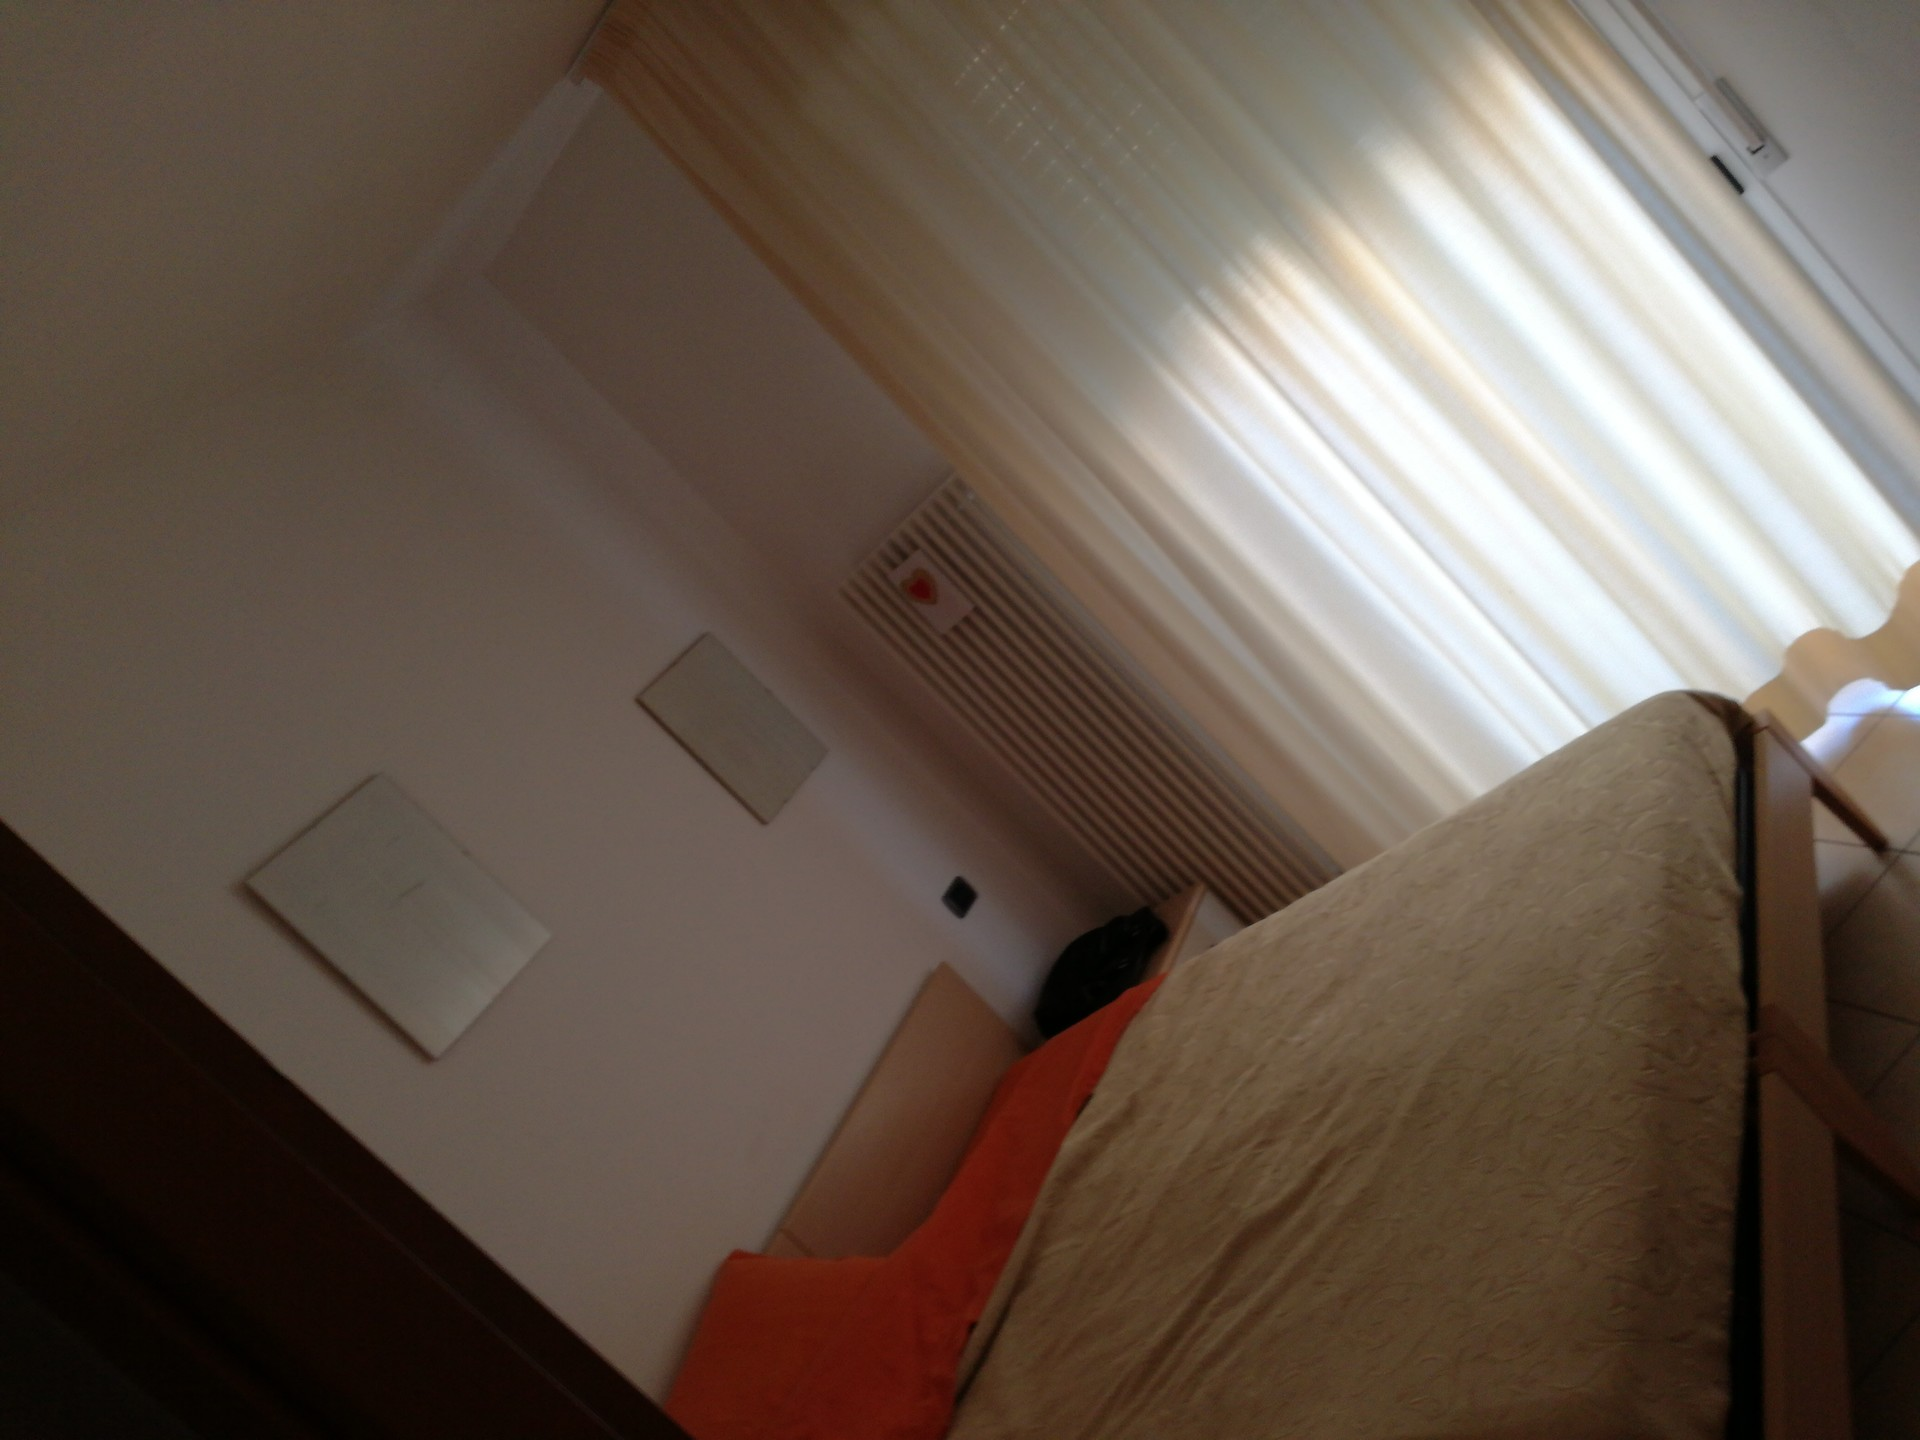 Divano Letto Matrimoniale Singolo.Available In Rimini Single Room In 2 Room Apartment Ideal For